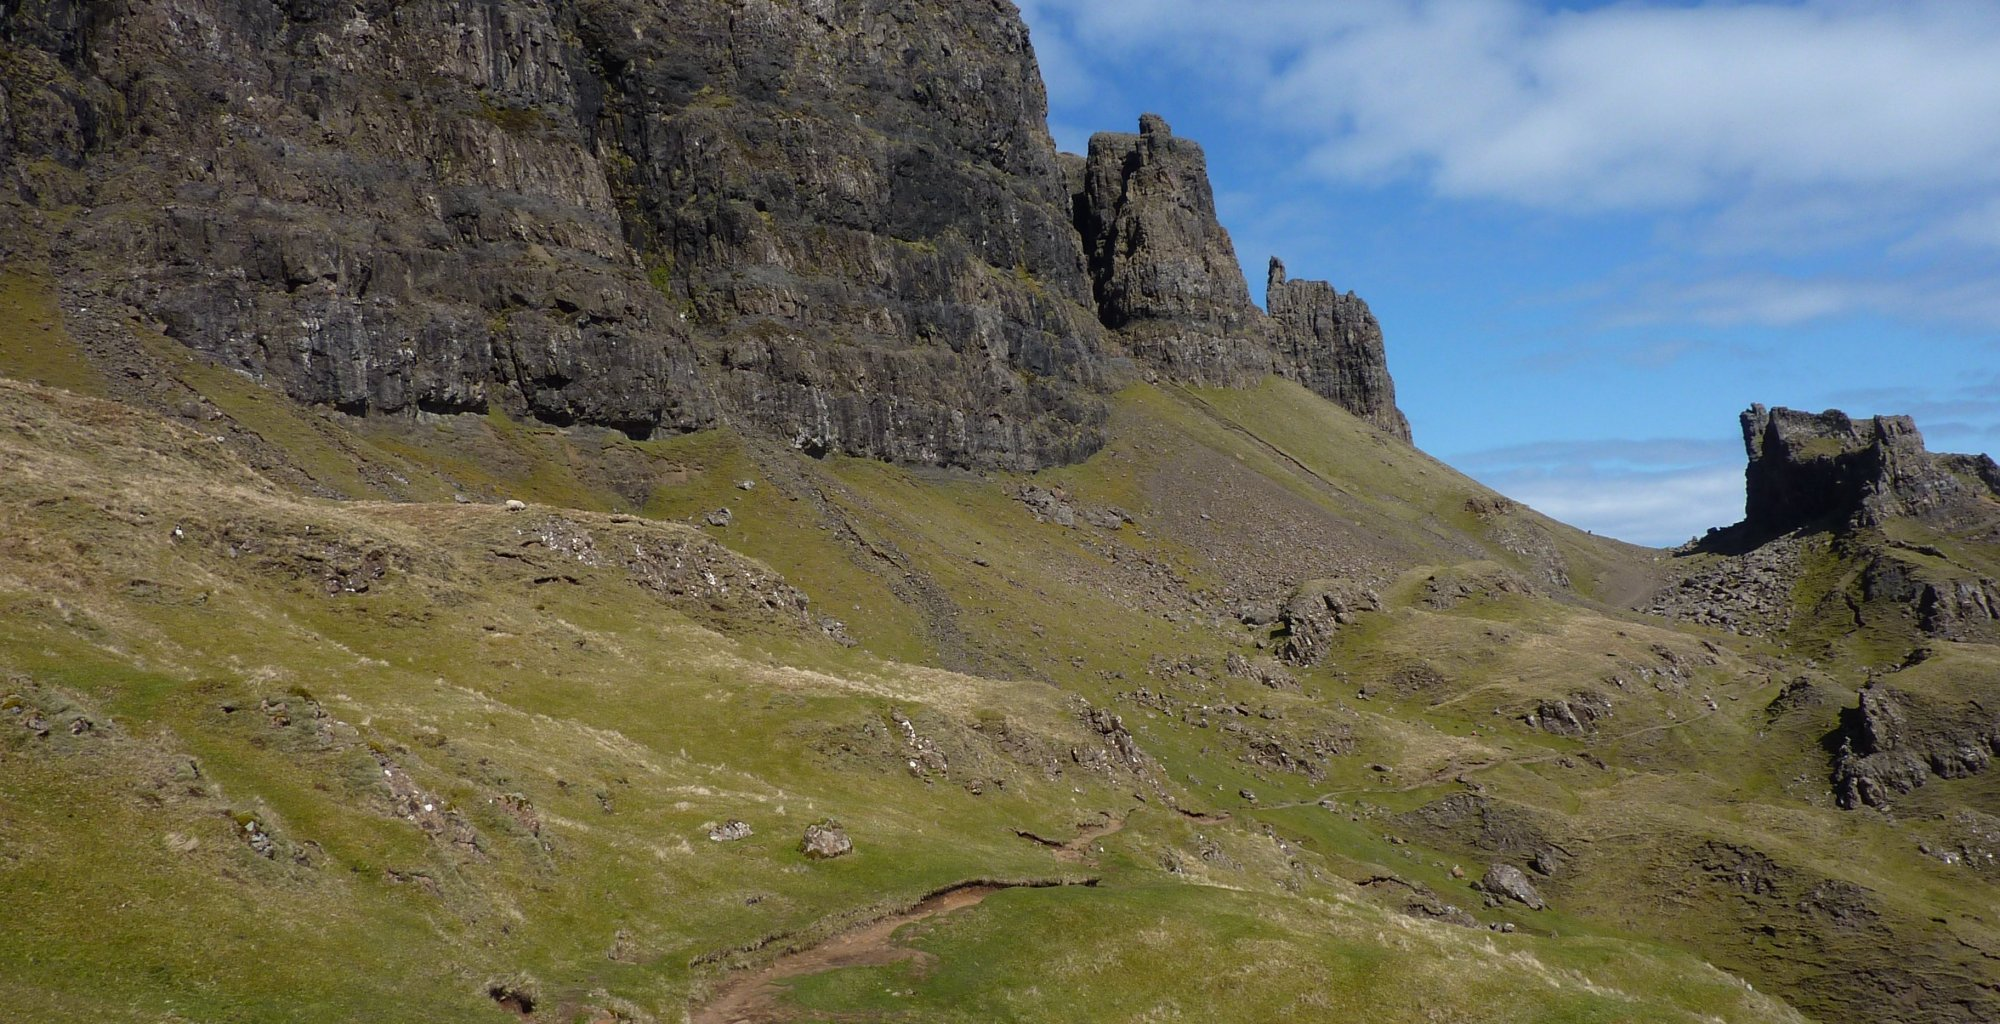 The Needle and the Prison, seen from the lower Quiraing path